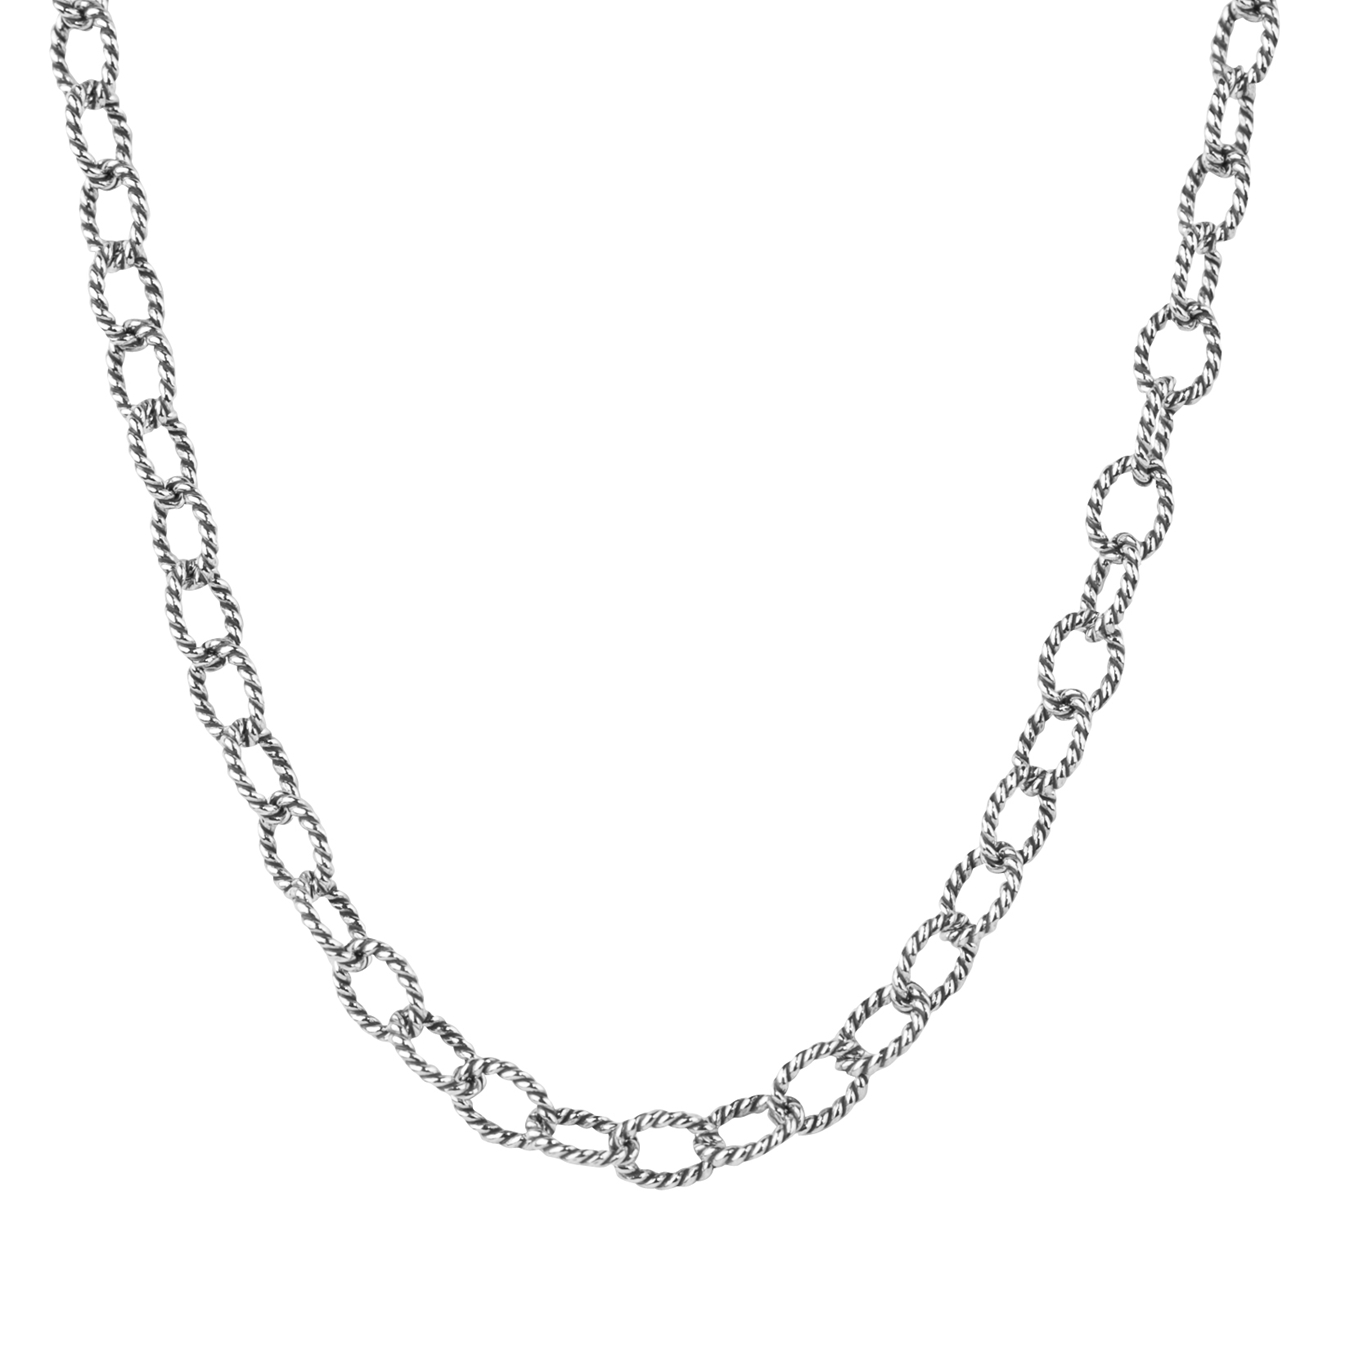 sterling silver 16 twisted rope chain necklace ekqabpz